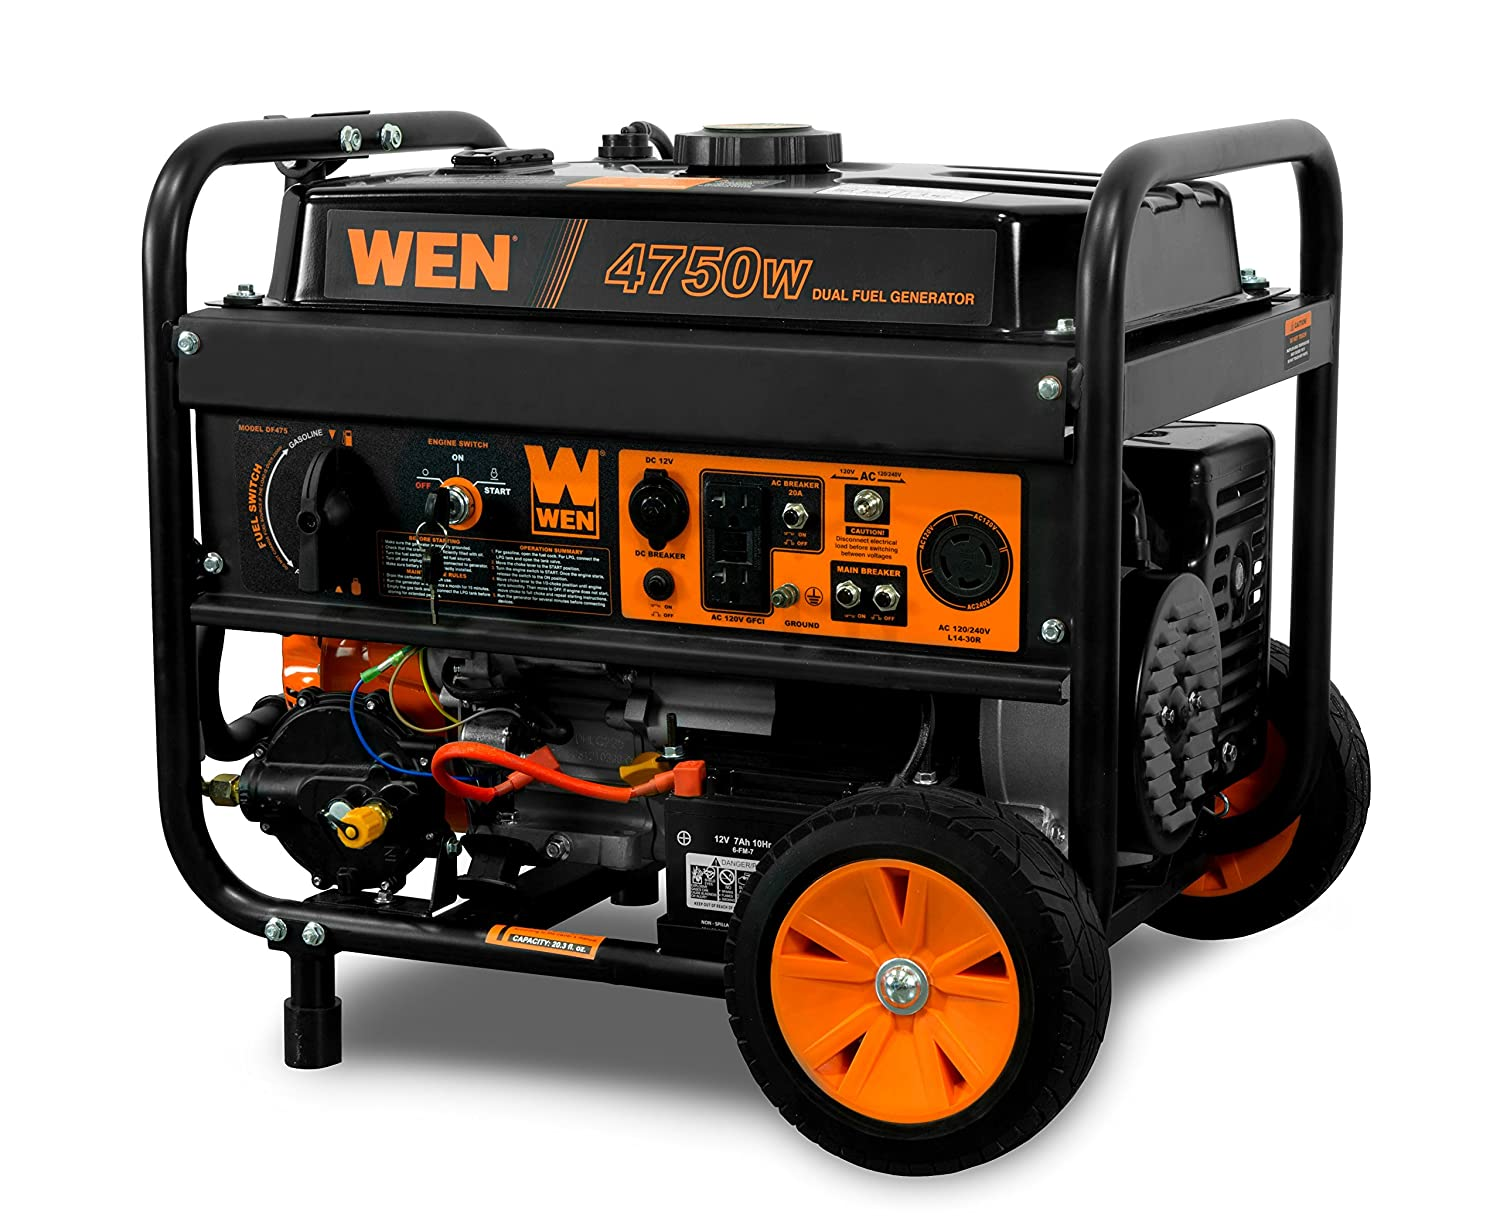 Best Portable Propane Generator 2020- Which One To Choose? 4